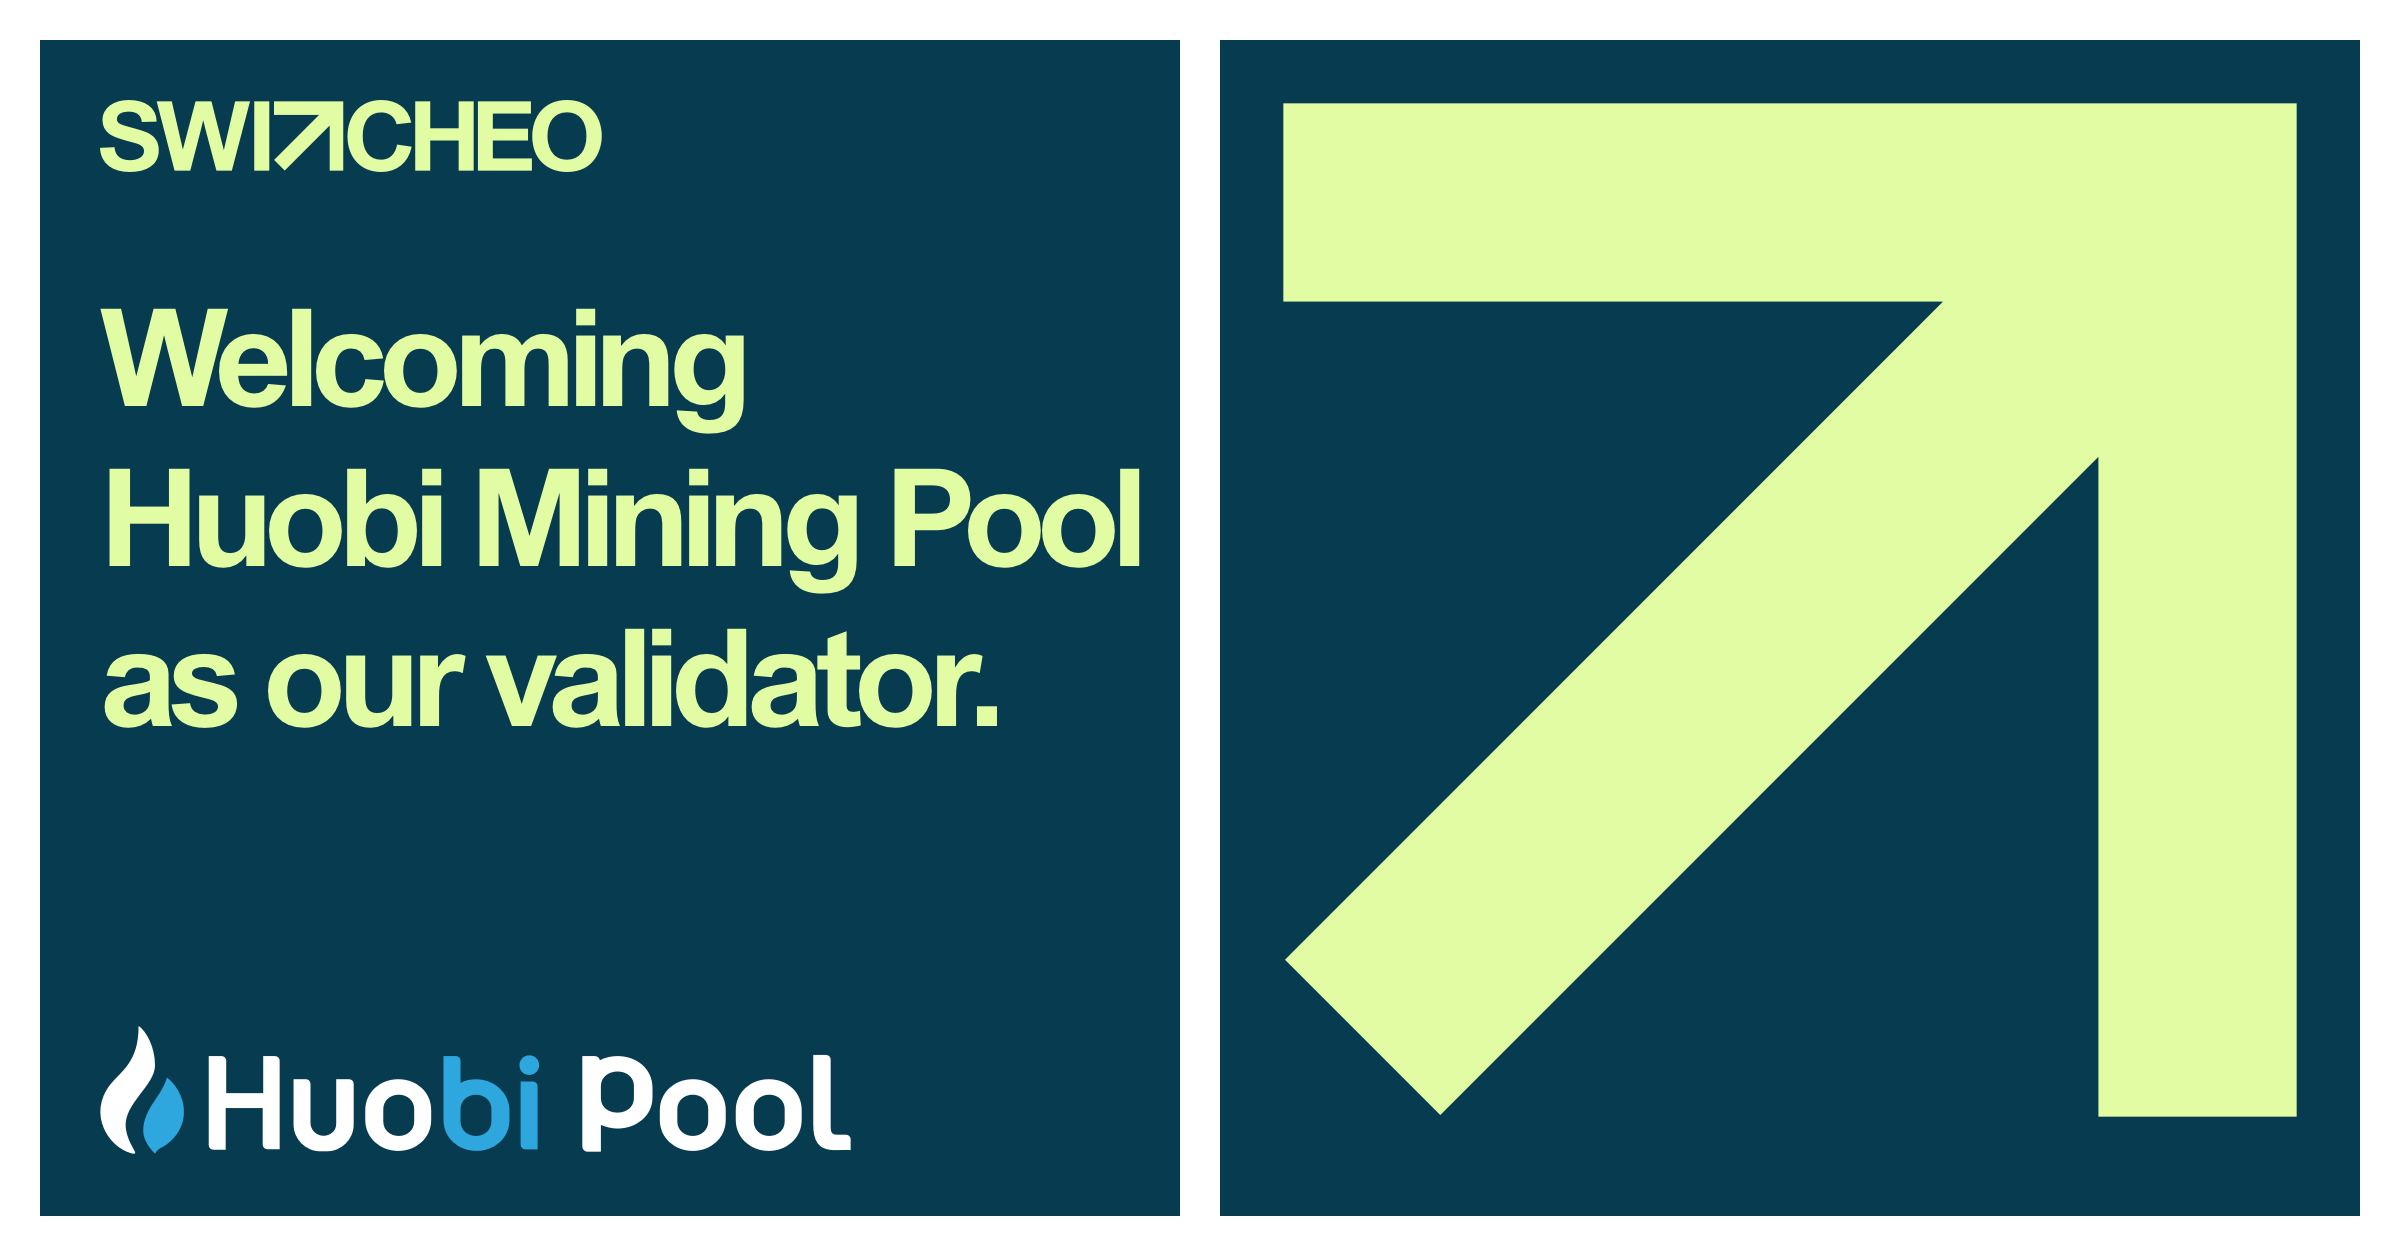 Huobi Mining Pool Supports Switcheo TradeHub as a Validator